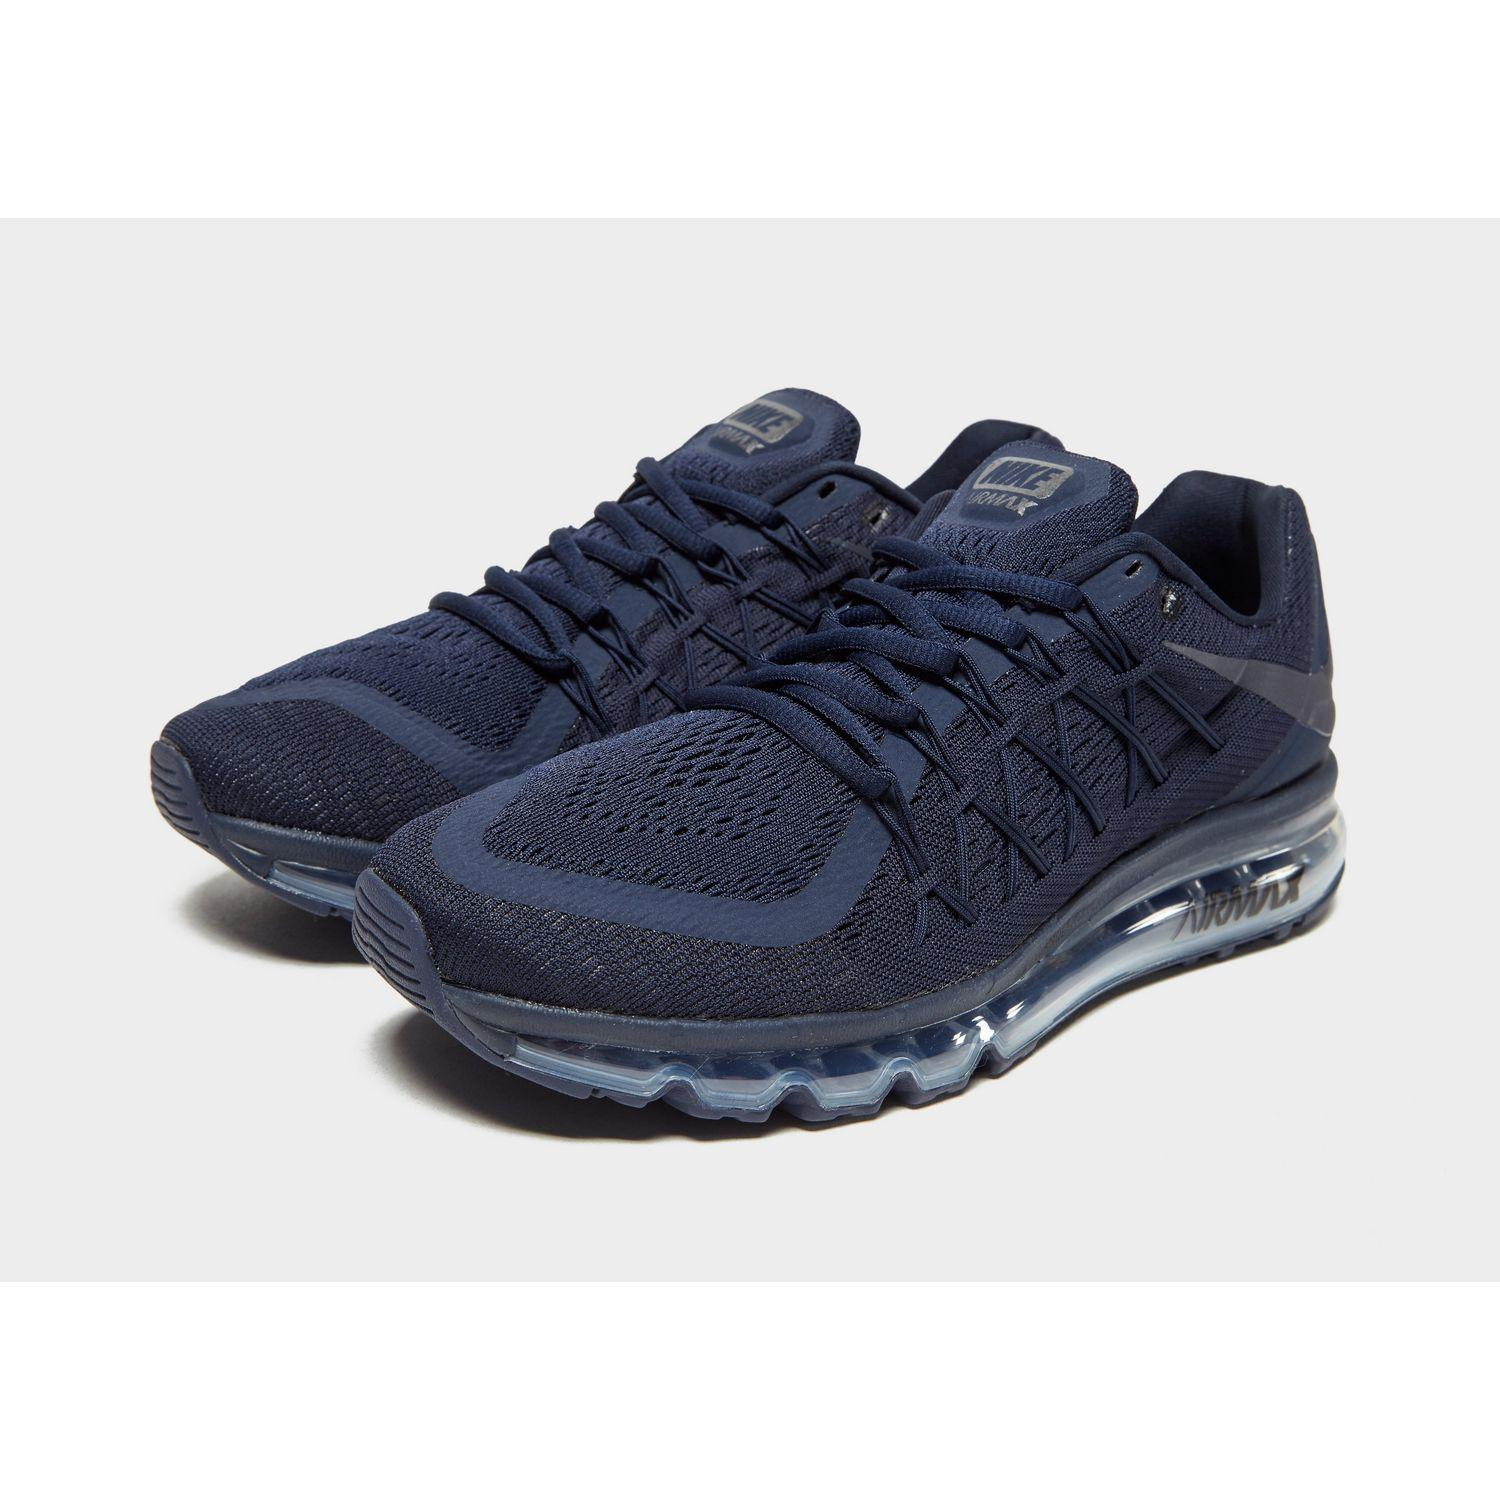 Nike Synthetic Air Max 2015 in Navy